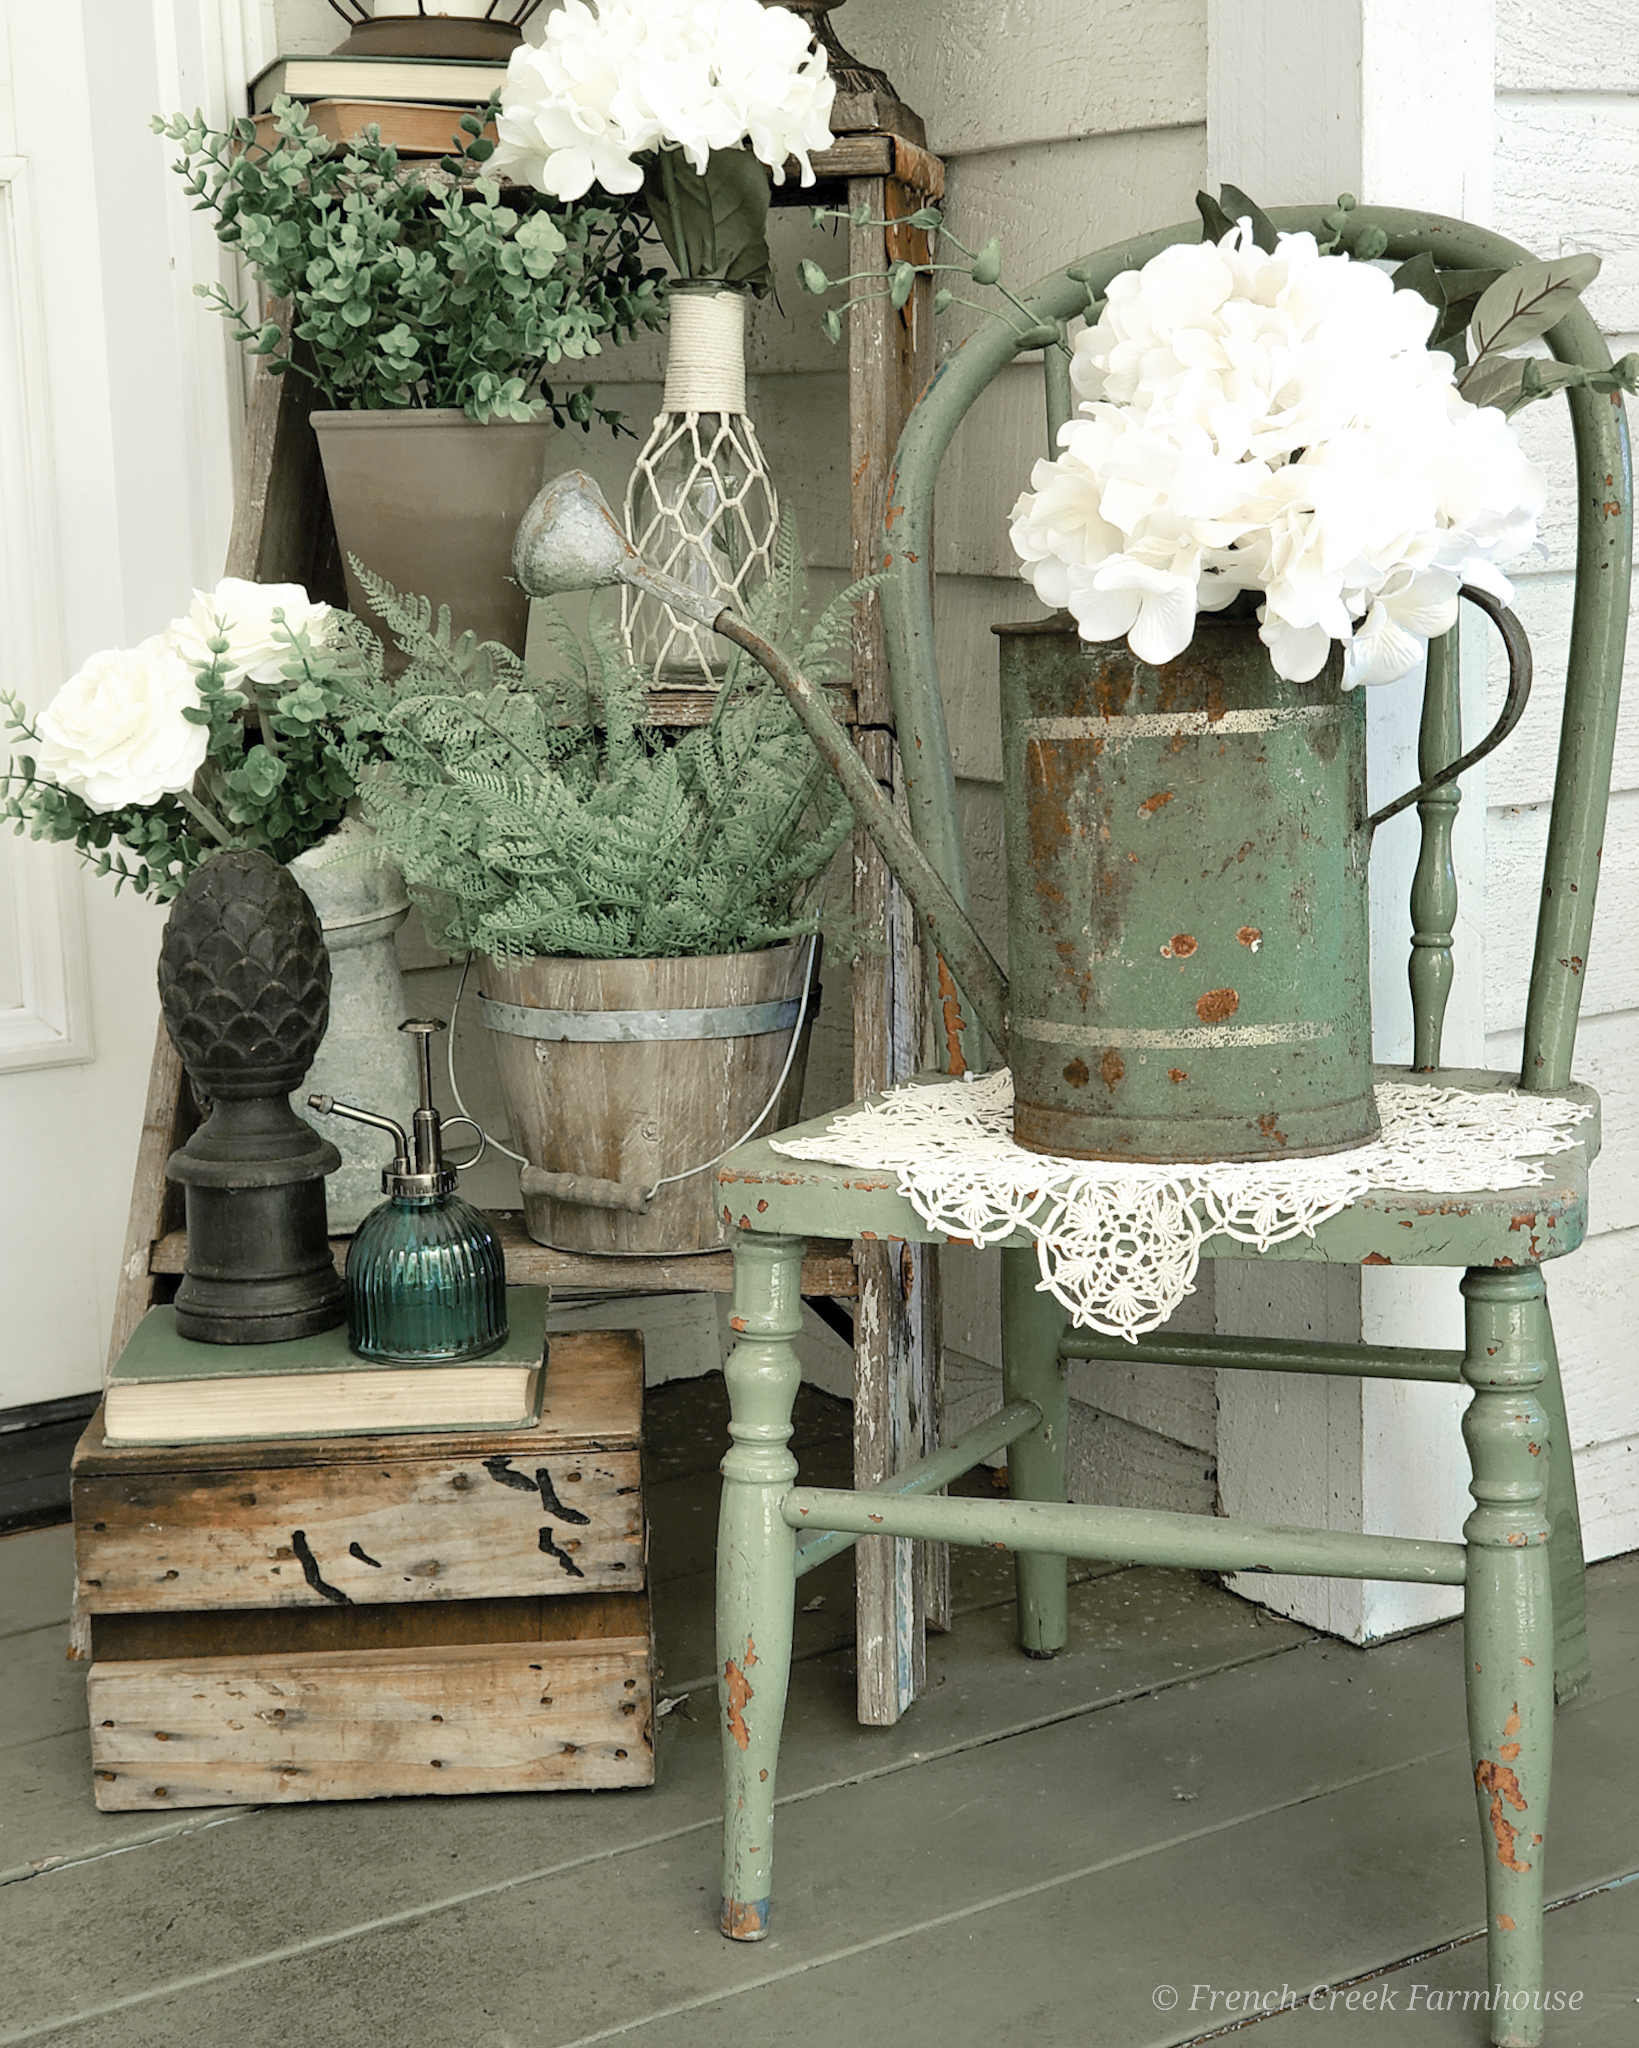 I'm using lots of spring blooms and vintage touches to decorate our porch this season